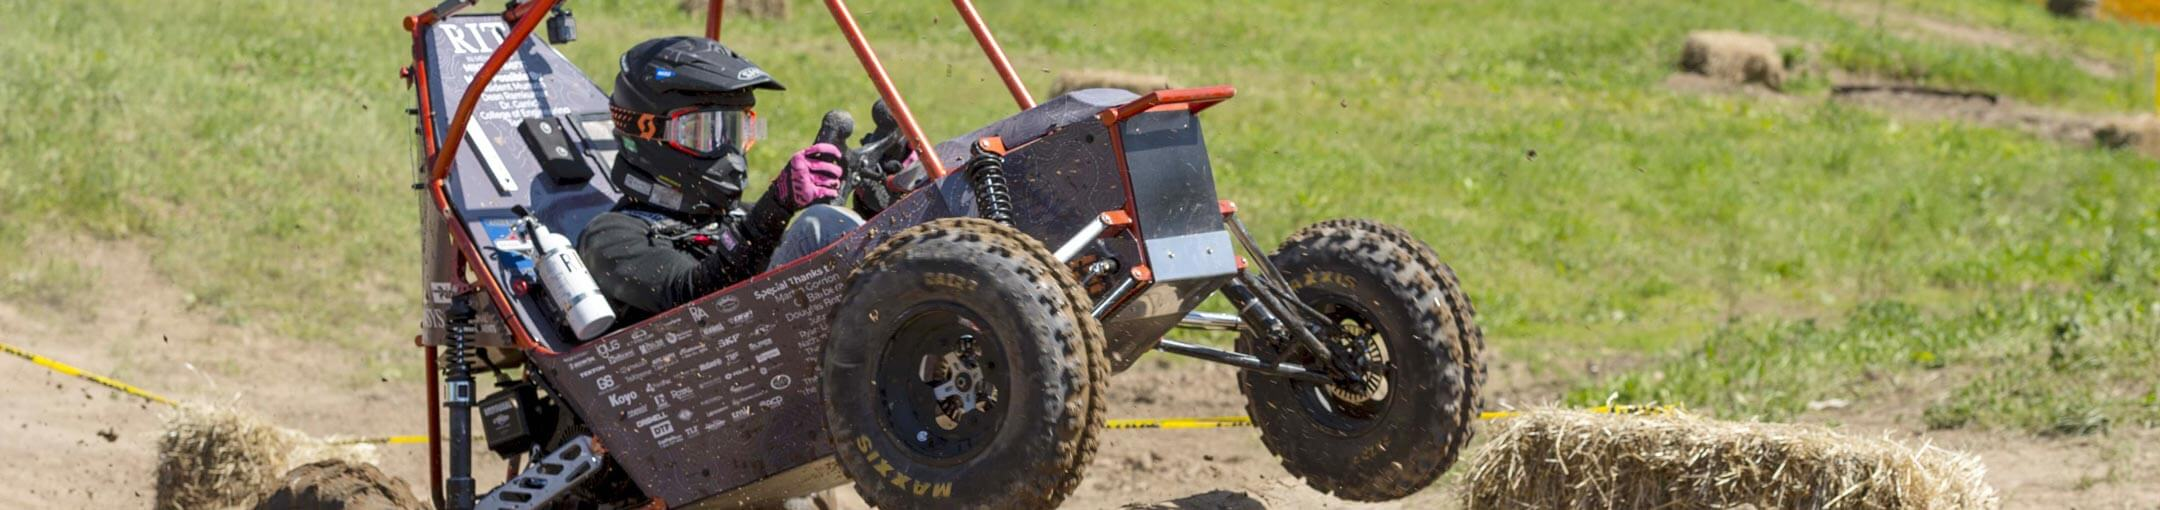 A helmeted student rides in the RIT Baja car.